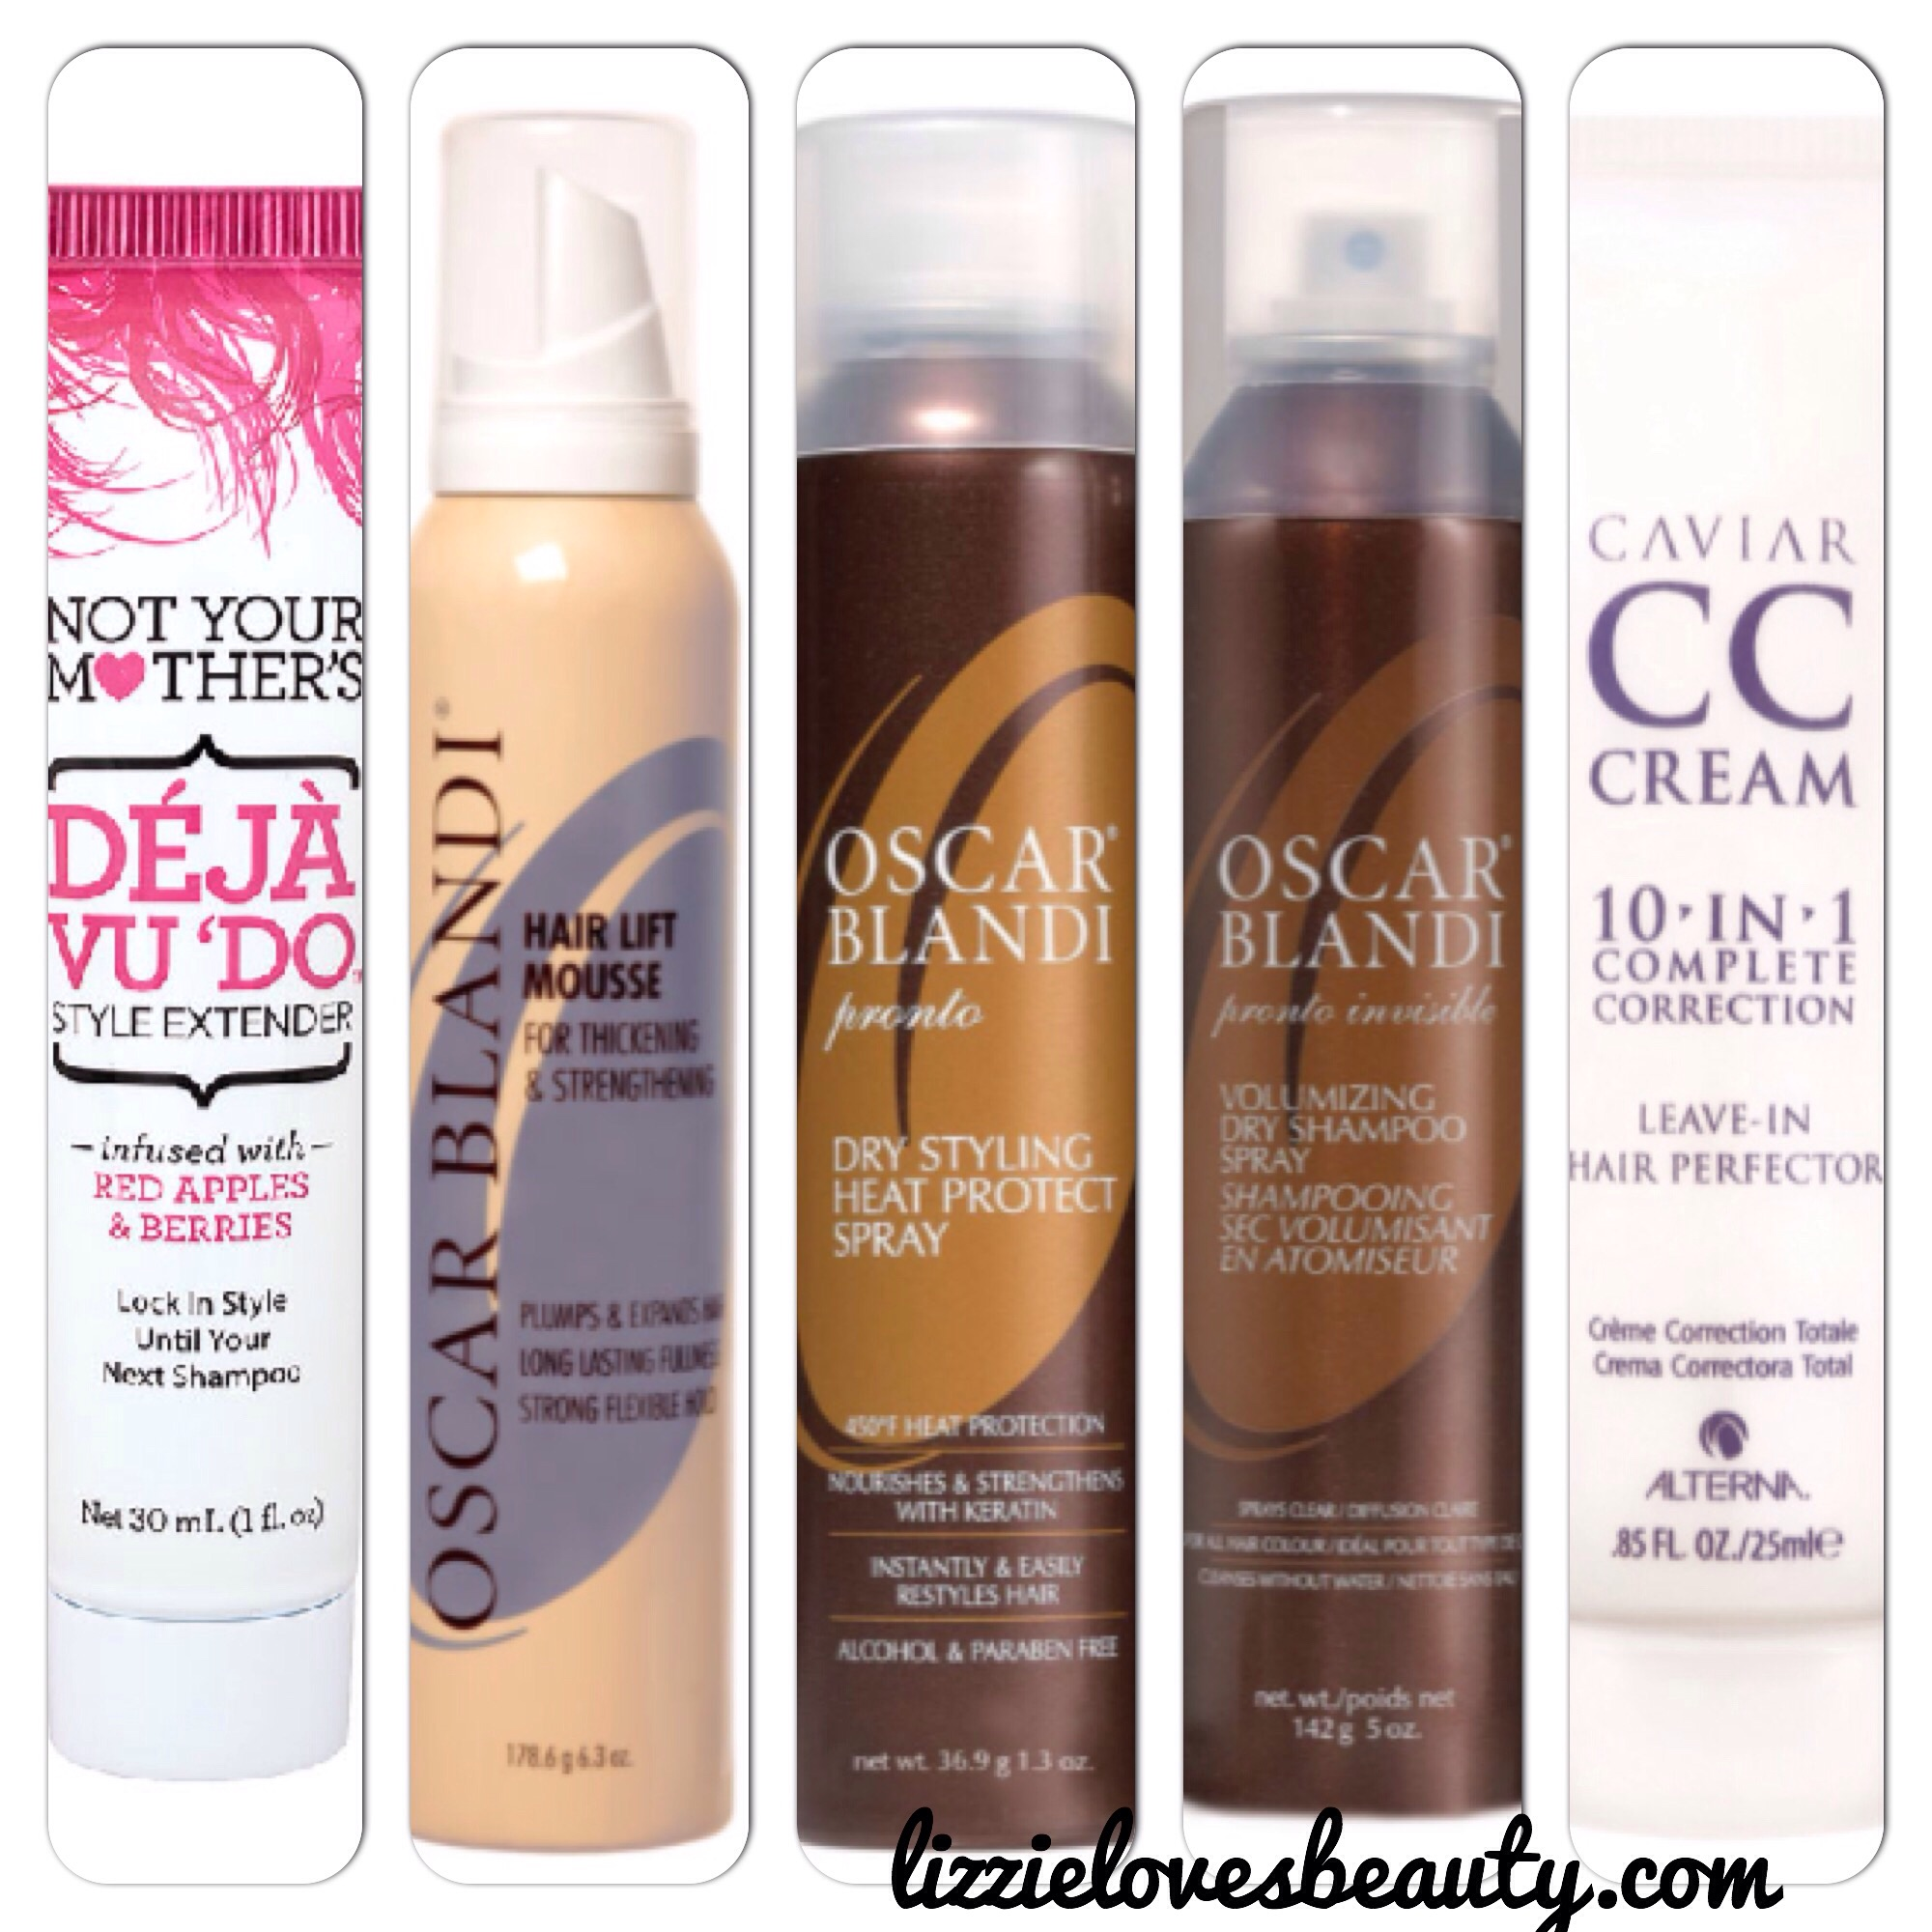 15 Hair Thickening Products Fuller Locks also Oh Beehive Katy Perrys Towering Hair Do For Met Gala together with Rosamund Pike At Golden Globe Awards 2015 Stunning Blunt Bob as well Cocoa Brown 1 Hour Tan Mousse moreover 15 Hair Thickening Products Fuller Locks. on oscar blandi hair lift mousse